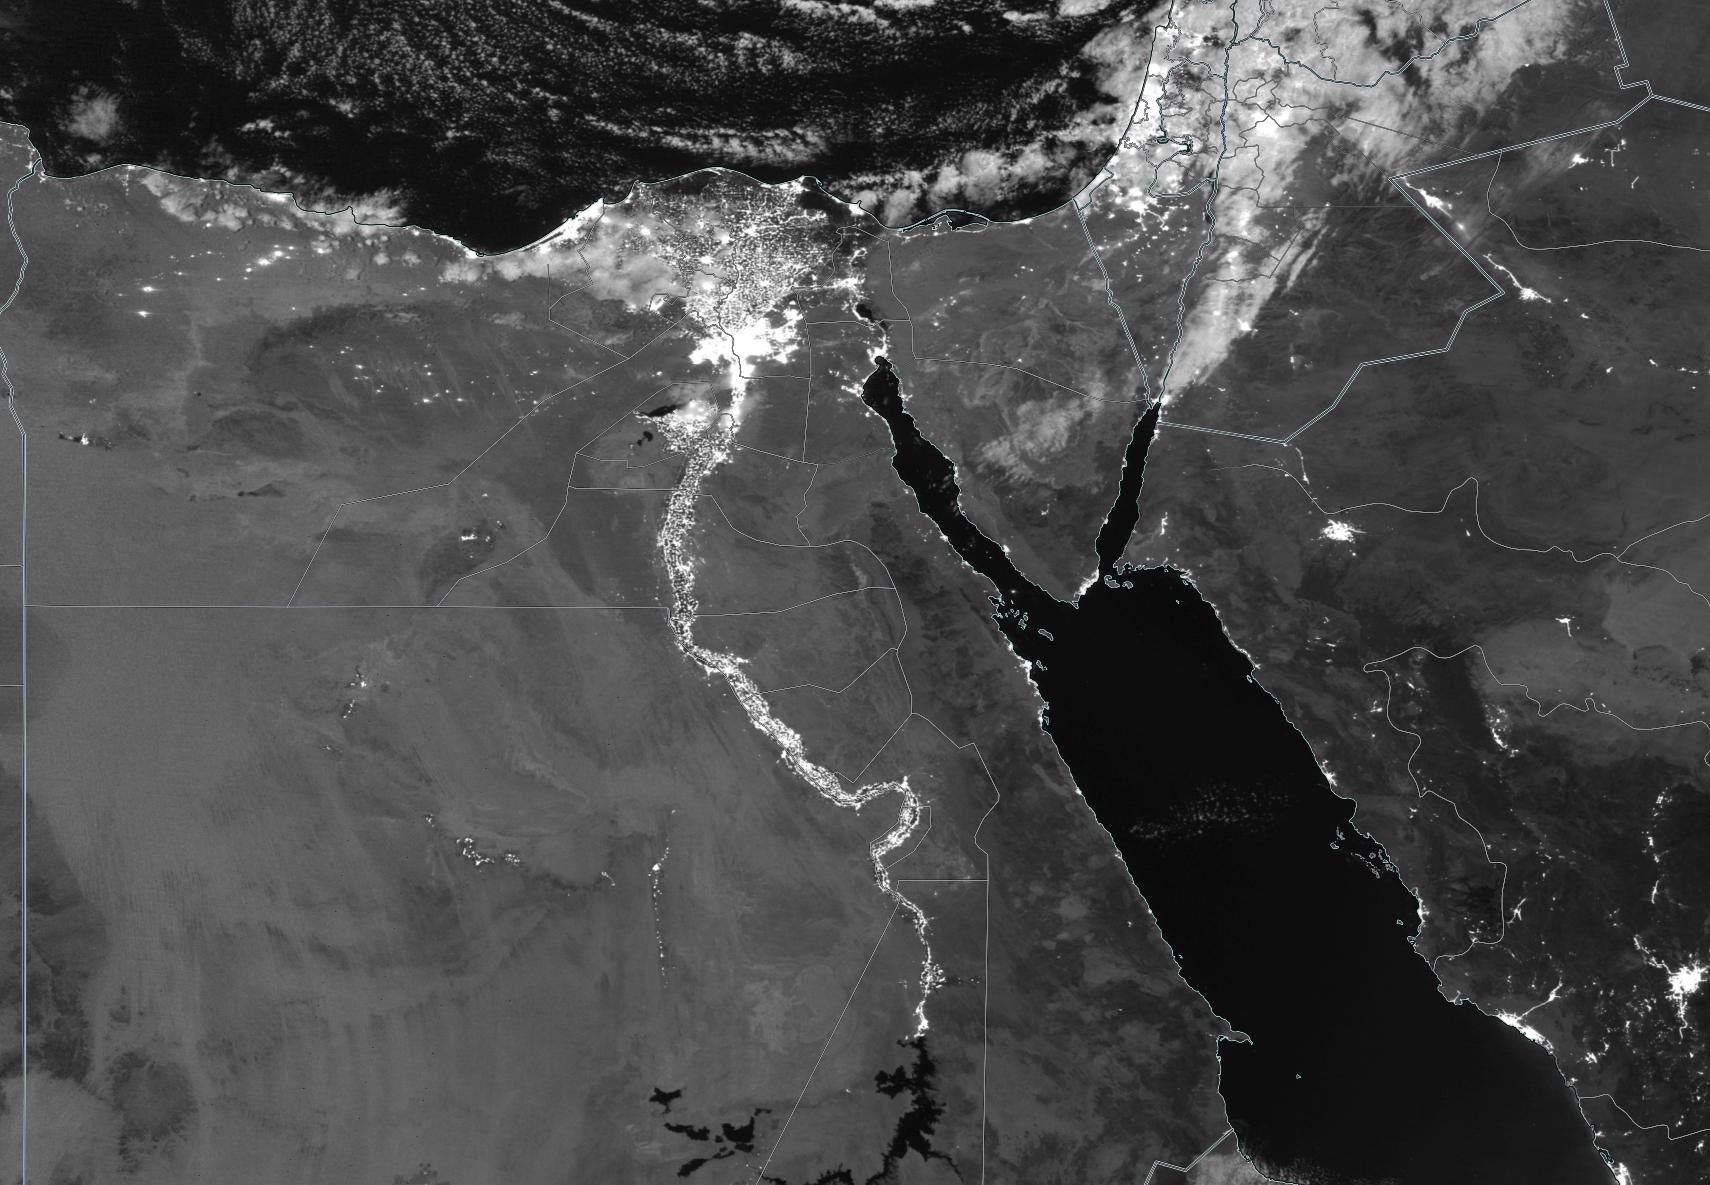 Black and white image of Egypt and the Nile Valley showing bright lights along the Nile and Cairo on the Mediterranean Sea.